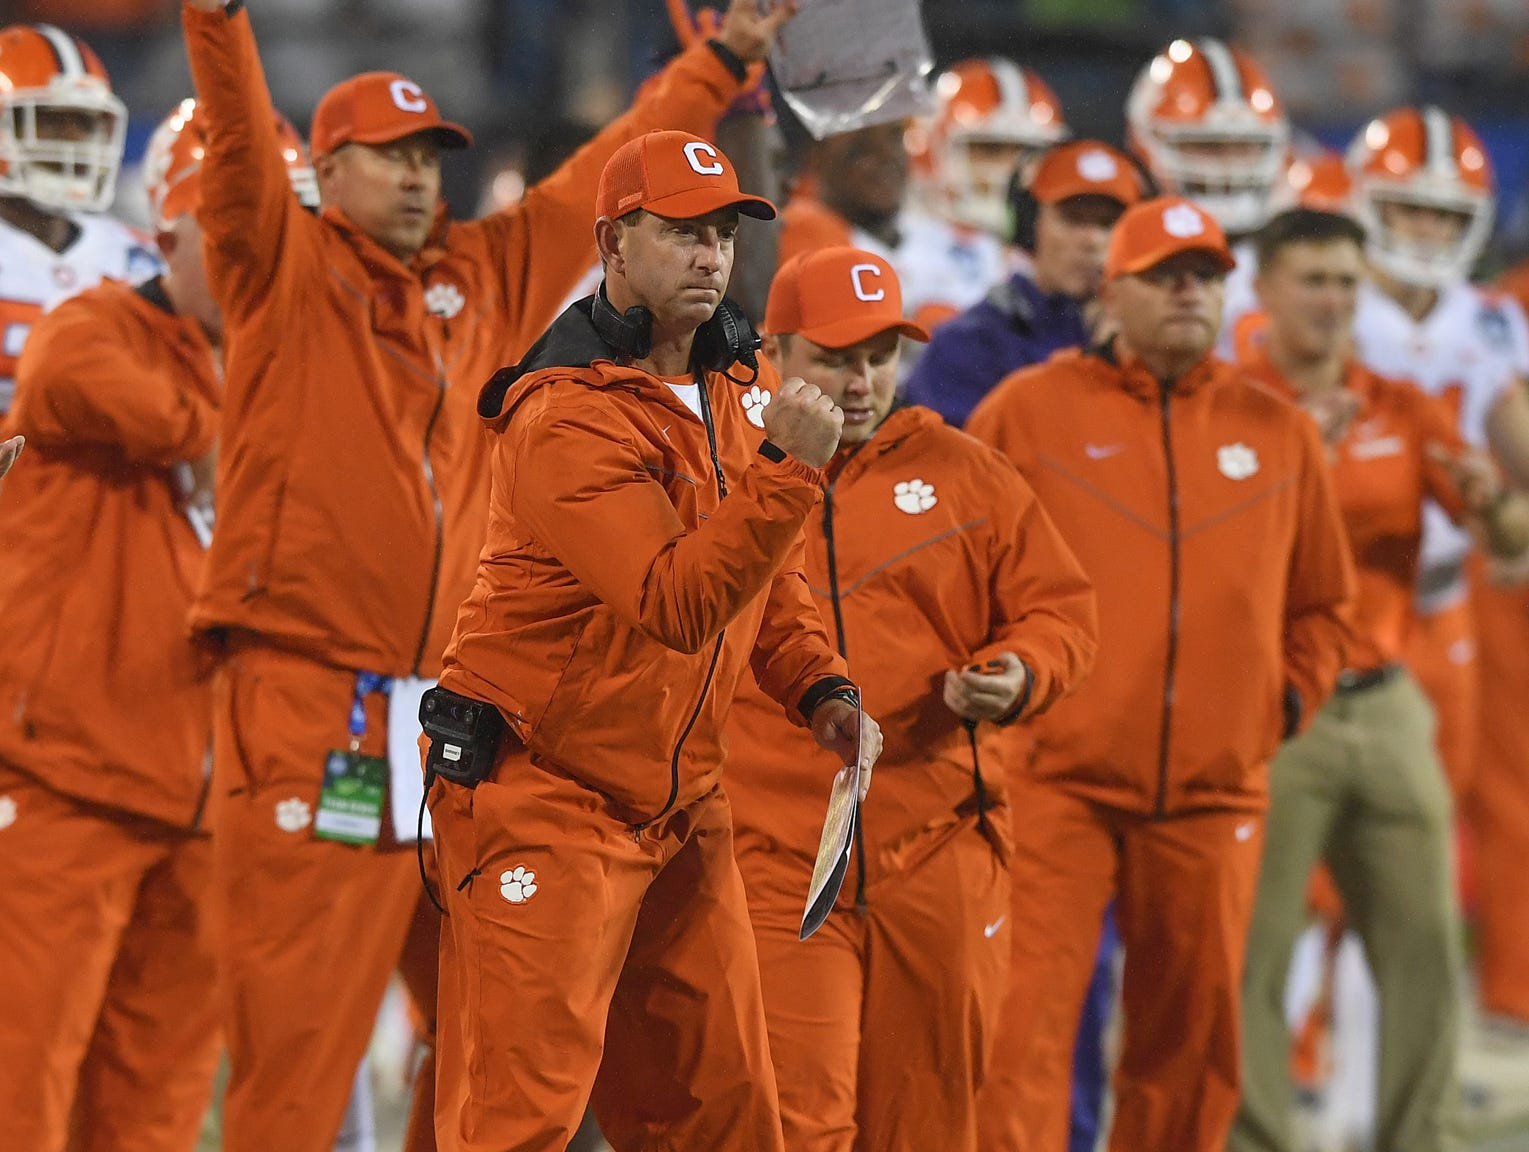 Clemson head coach Dabo Swinney during the 1st quarter of the Dr. Pepper ACC Championship at Bank of America Stadium in Charlotte, N.C. Saturday, December 1, 2018.